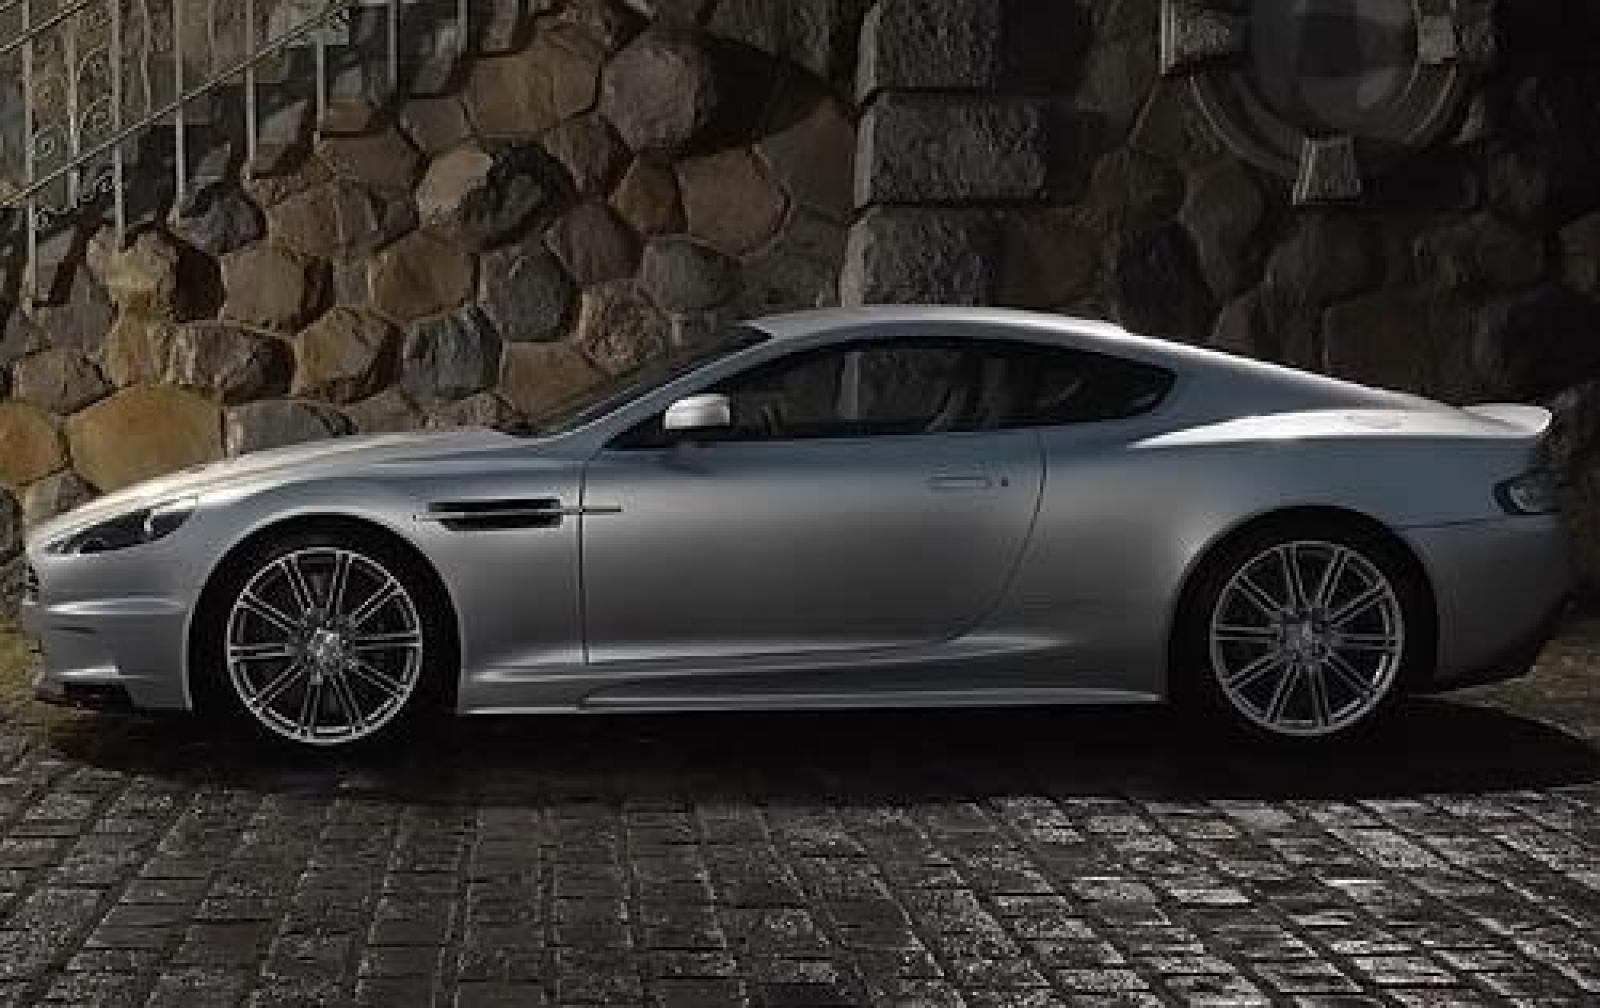 2011 aston martin dbs information and photos zombiedrive. Black Bedroom Furniture Sets. Home Design Ideas